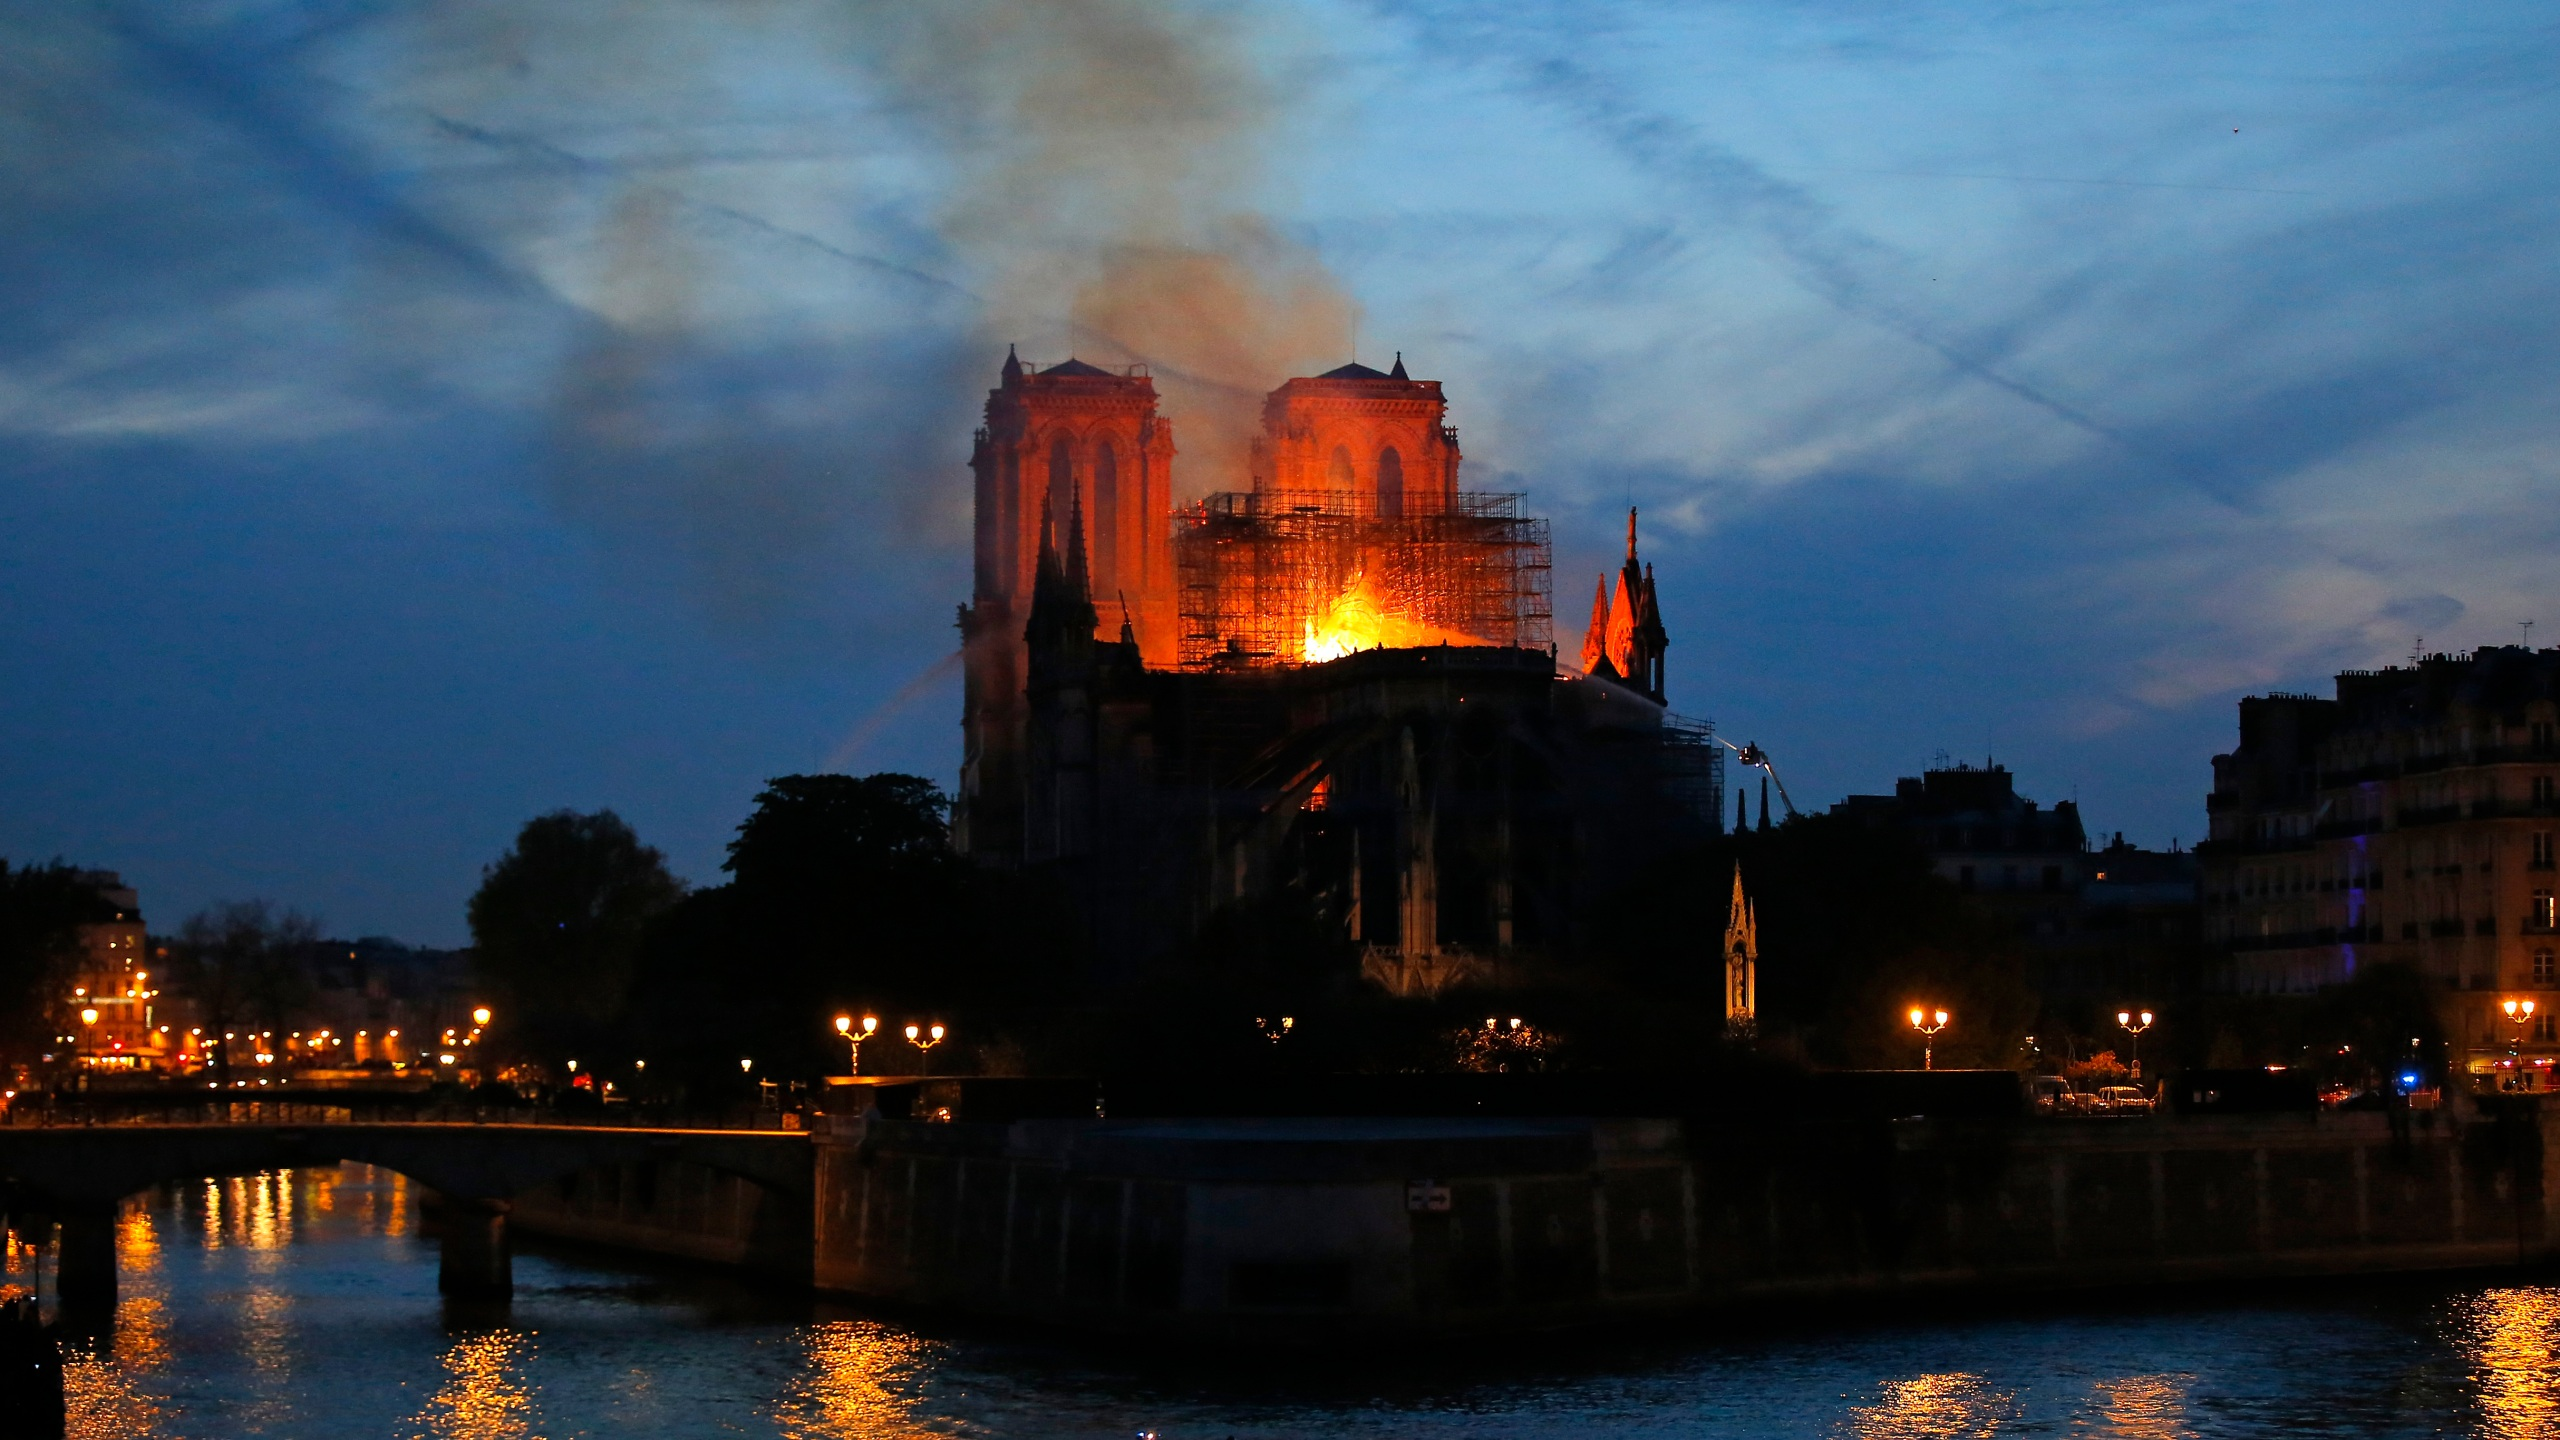 France_Notre_Dame_Fire_Photo_Gallery_87876-159532.jpg30370427